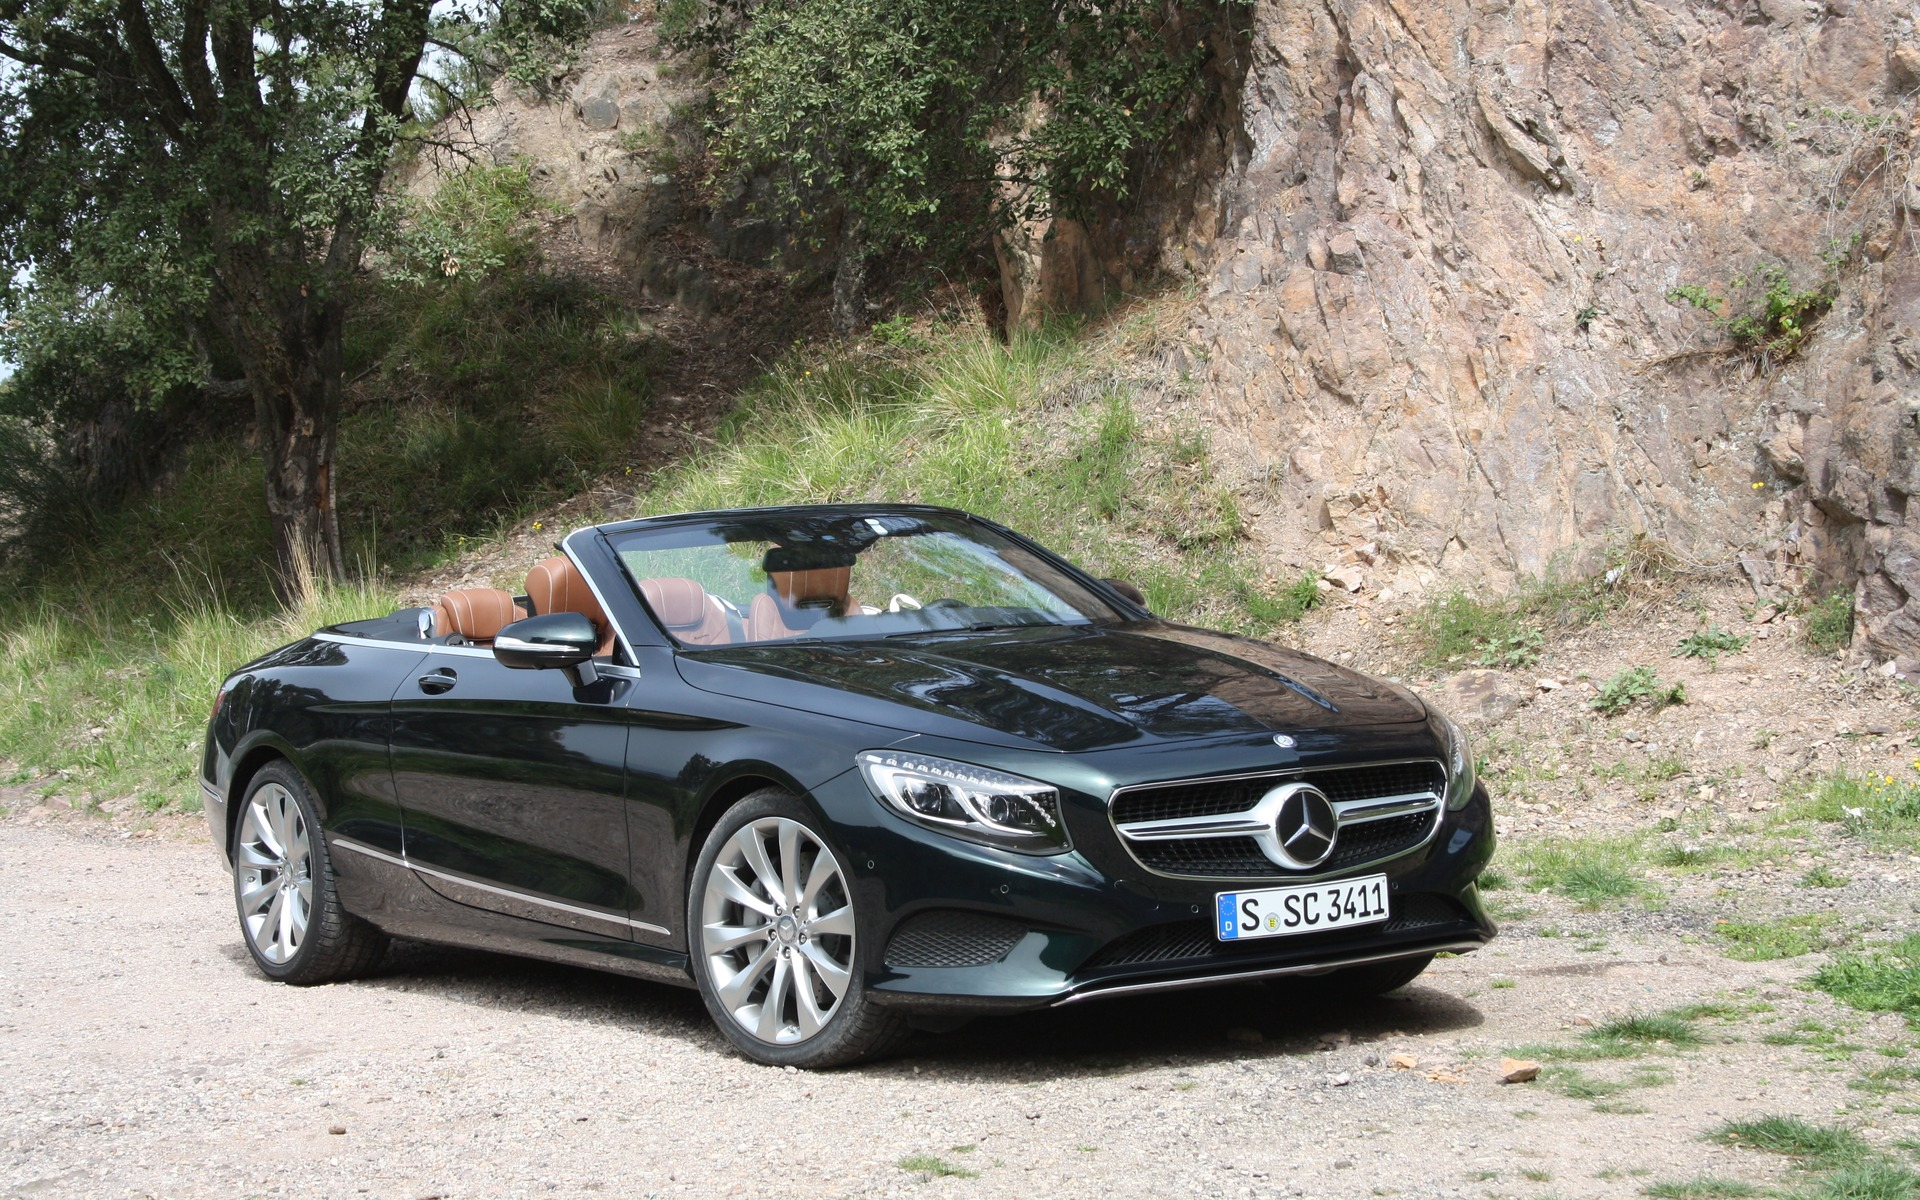 2017 Mercedes-Benz S-Class Cabriolet: When Too Much Isn\'t Enough - 2/54